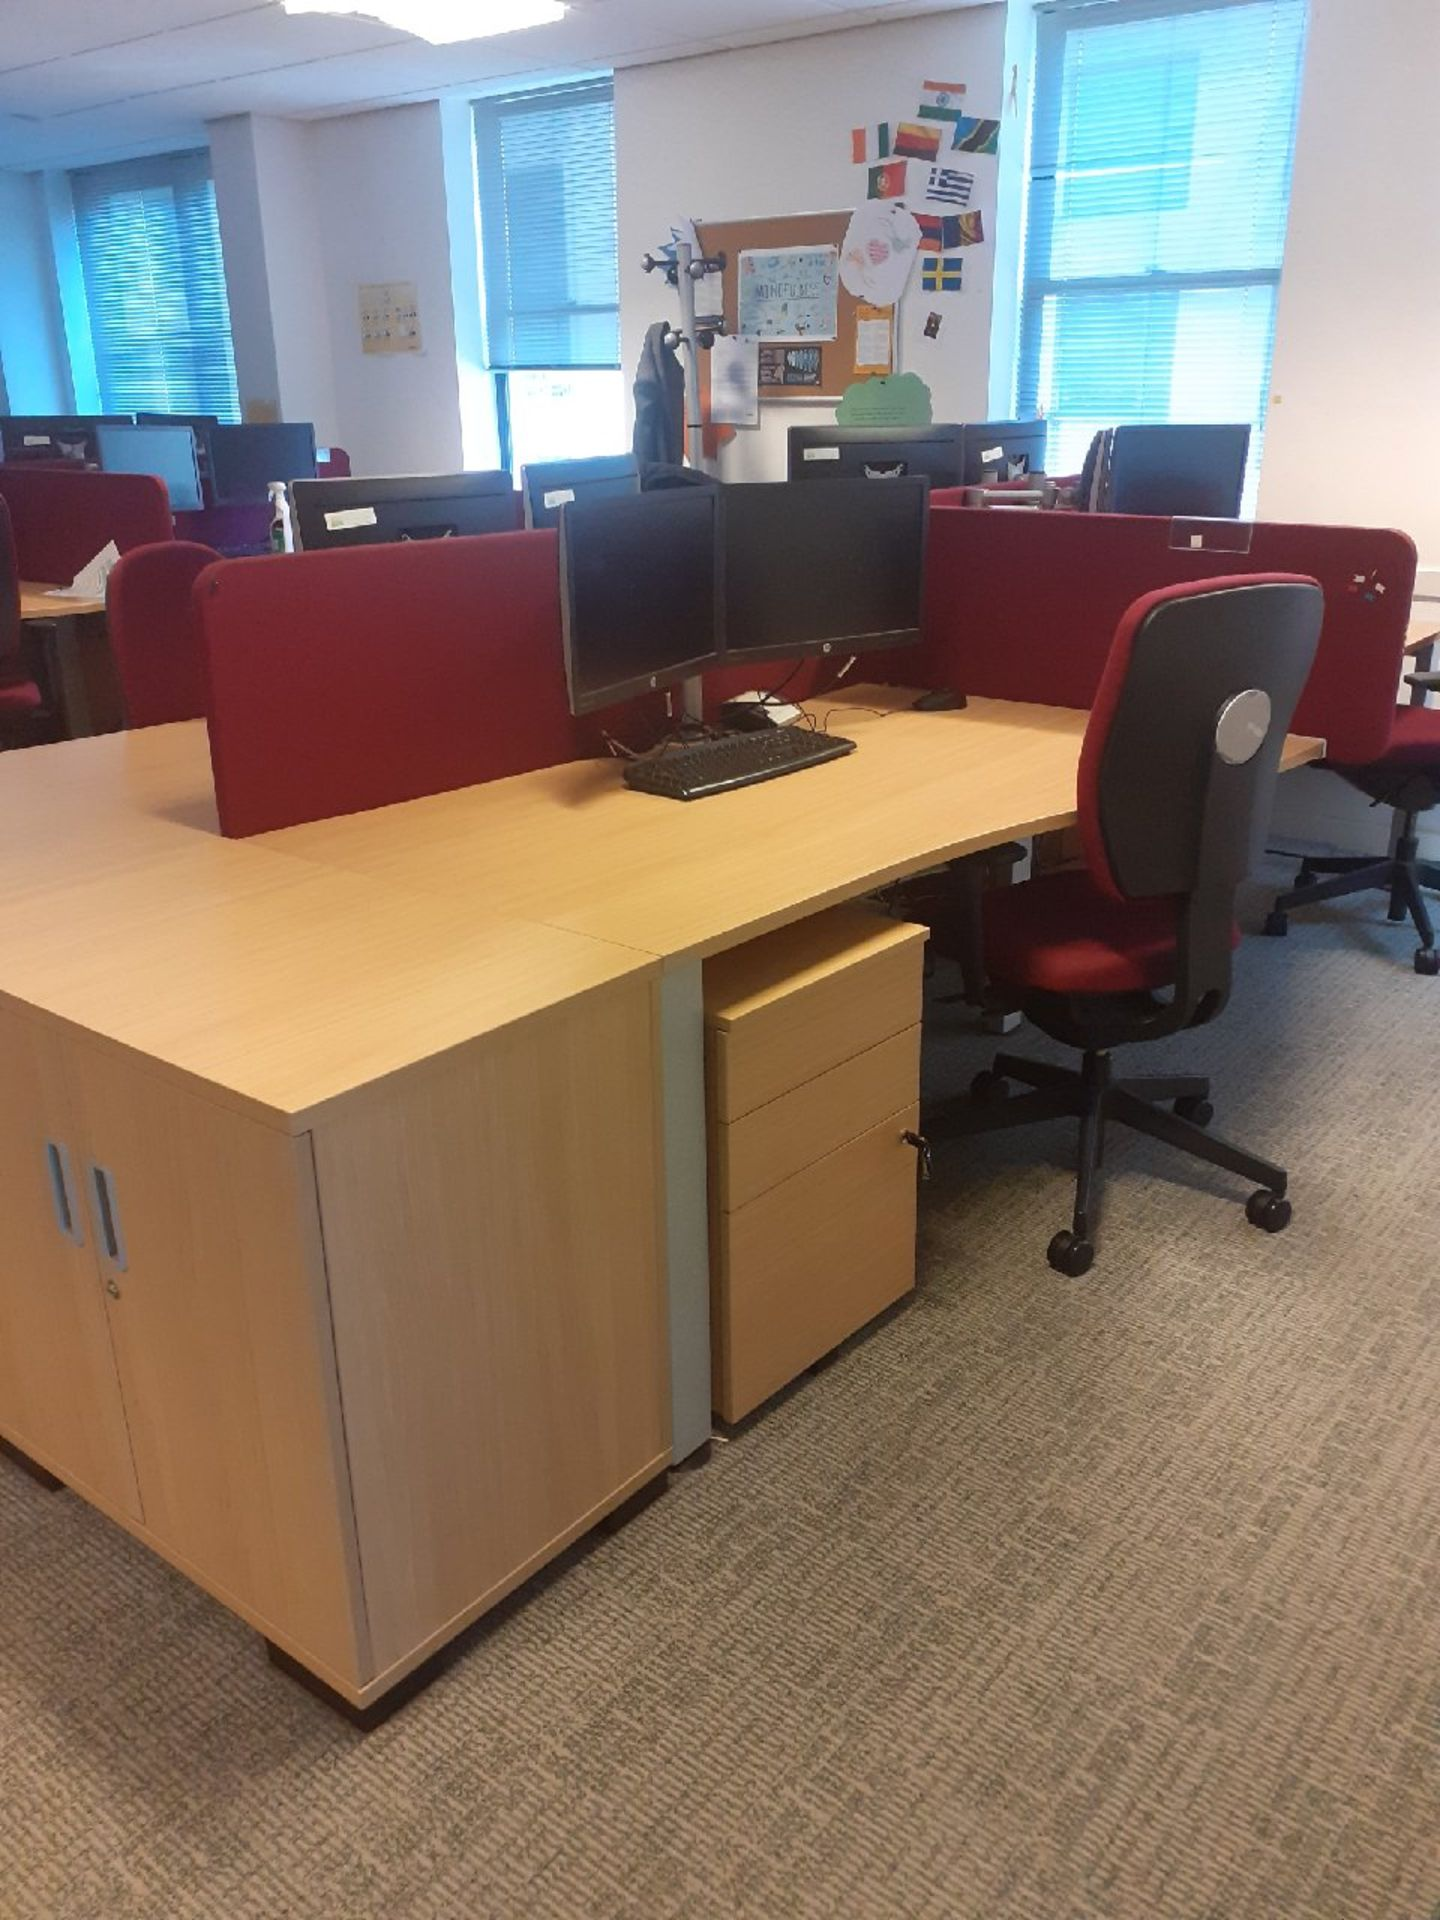 1 x Bank of 6 office desk/workstations & 3 x Banks of 8 office desks/workstations. - Image 3 of 3